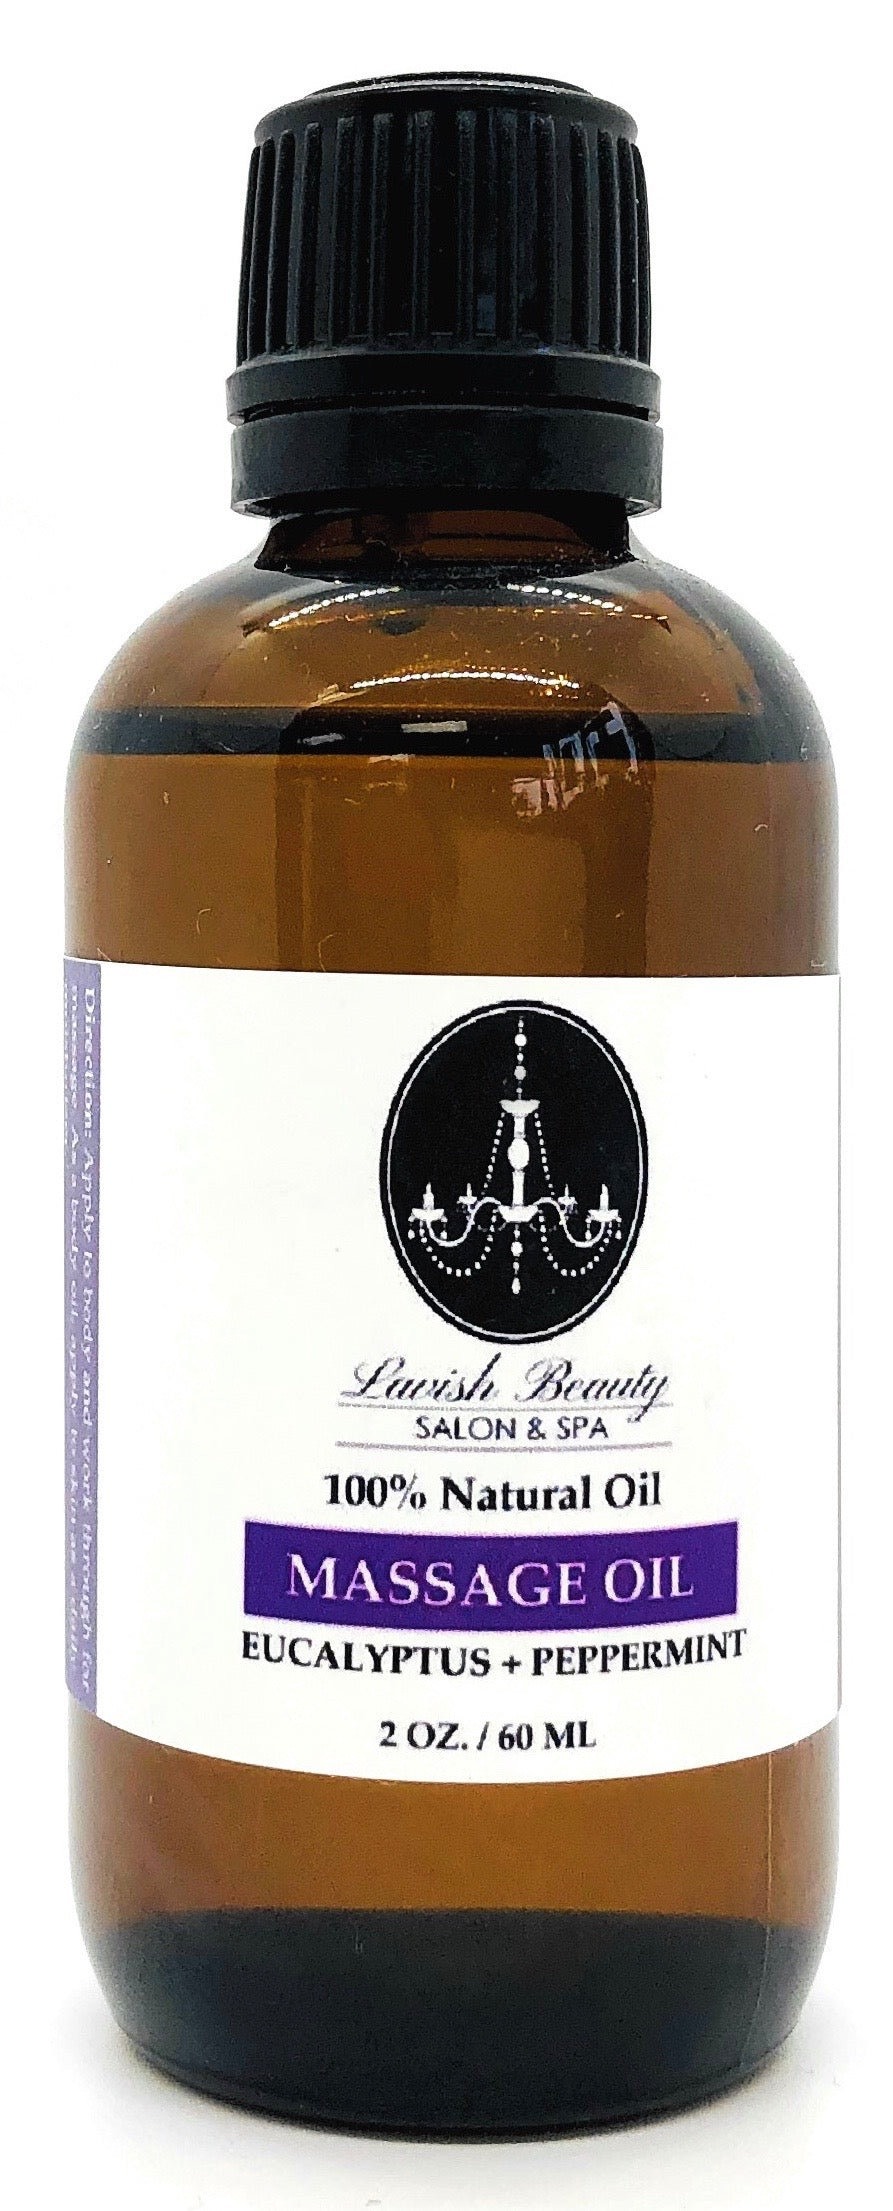 Massage & Body Oil (Eucalyptus + Peppermint) 2 oz.